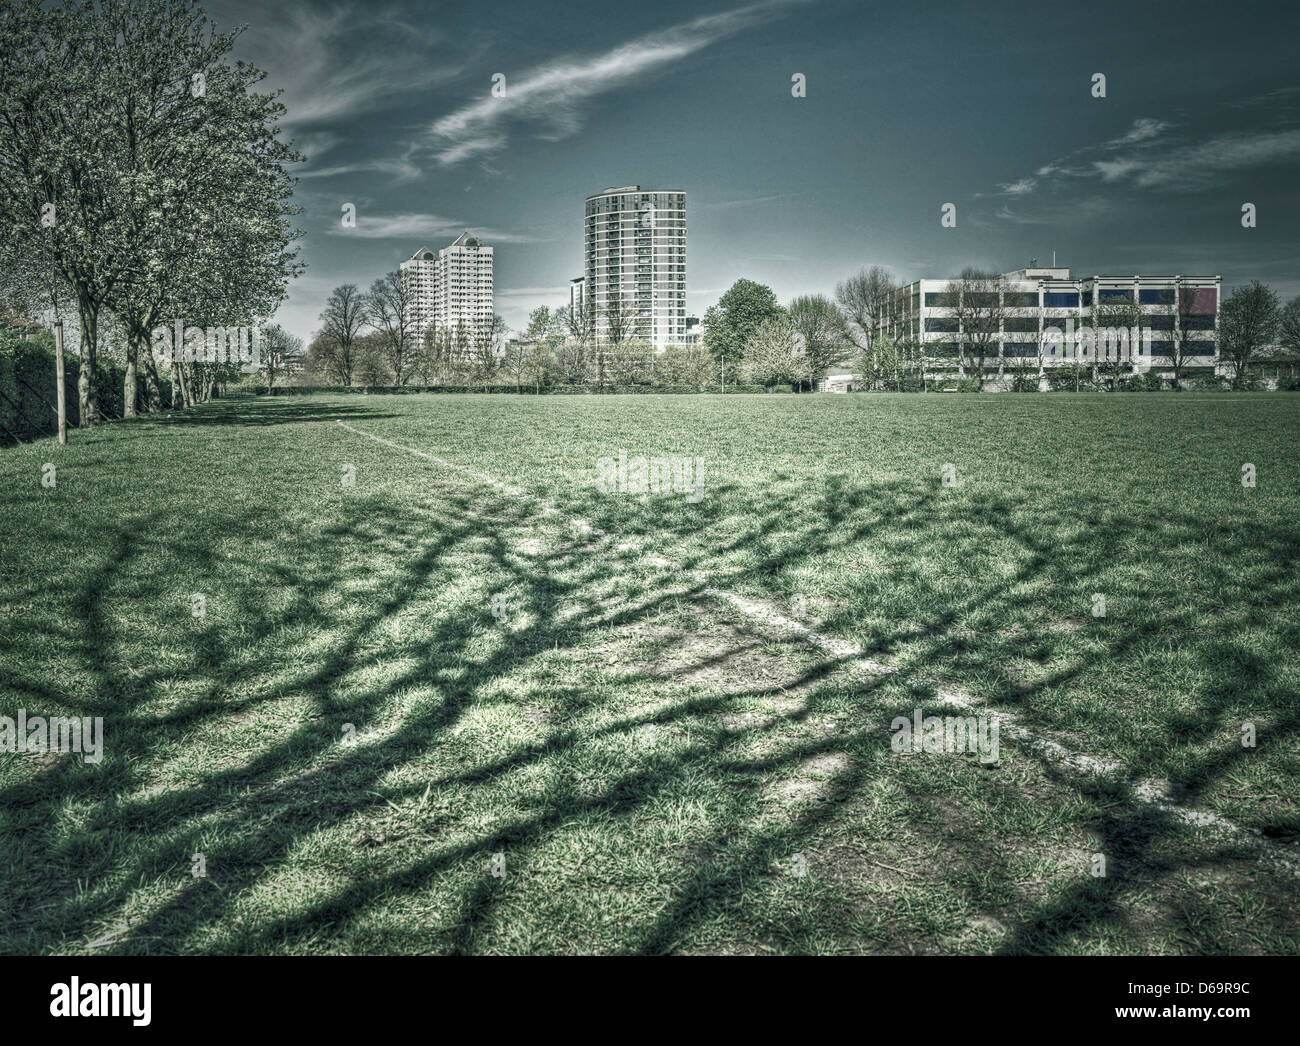 Trees casting shadows on grass in park - Stock Image